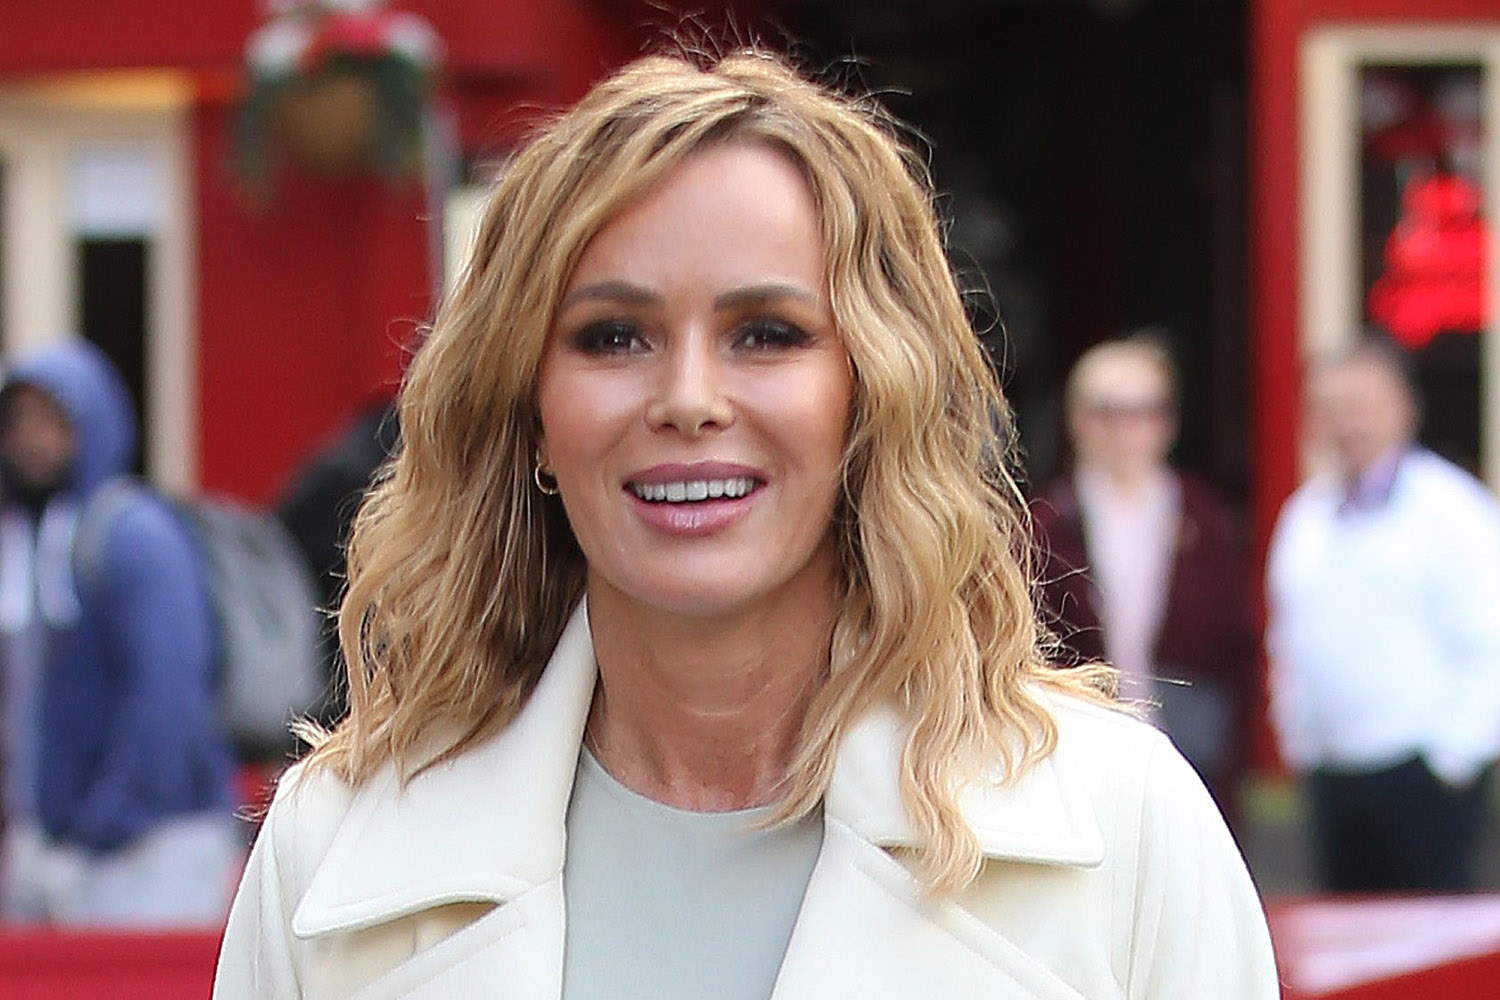 Amanda Holden fans brand her and husband 'couple goals' as they celebrate special occasion